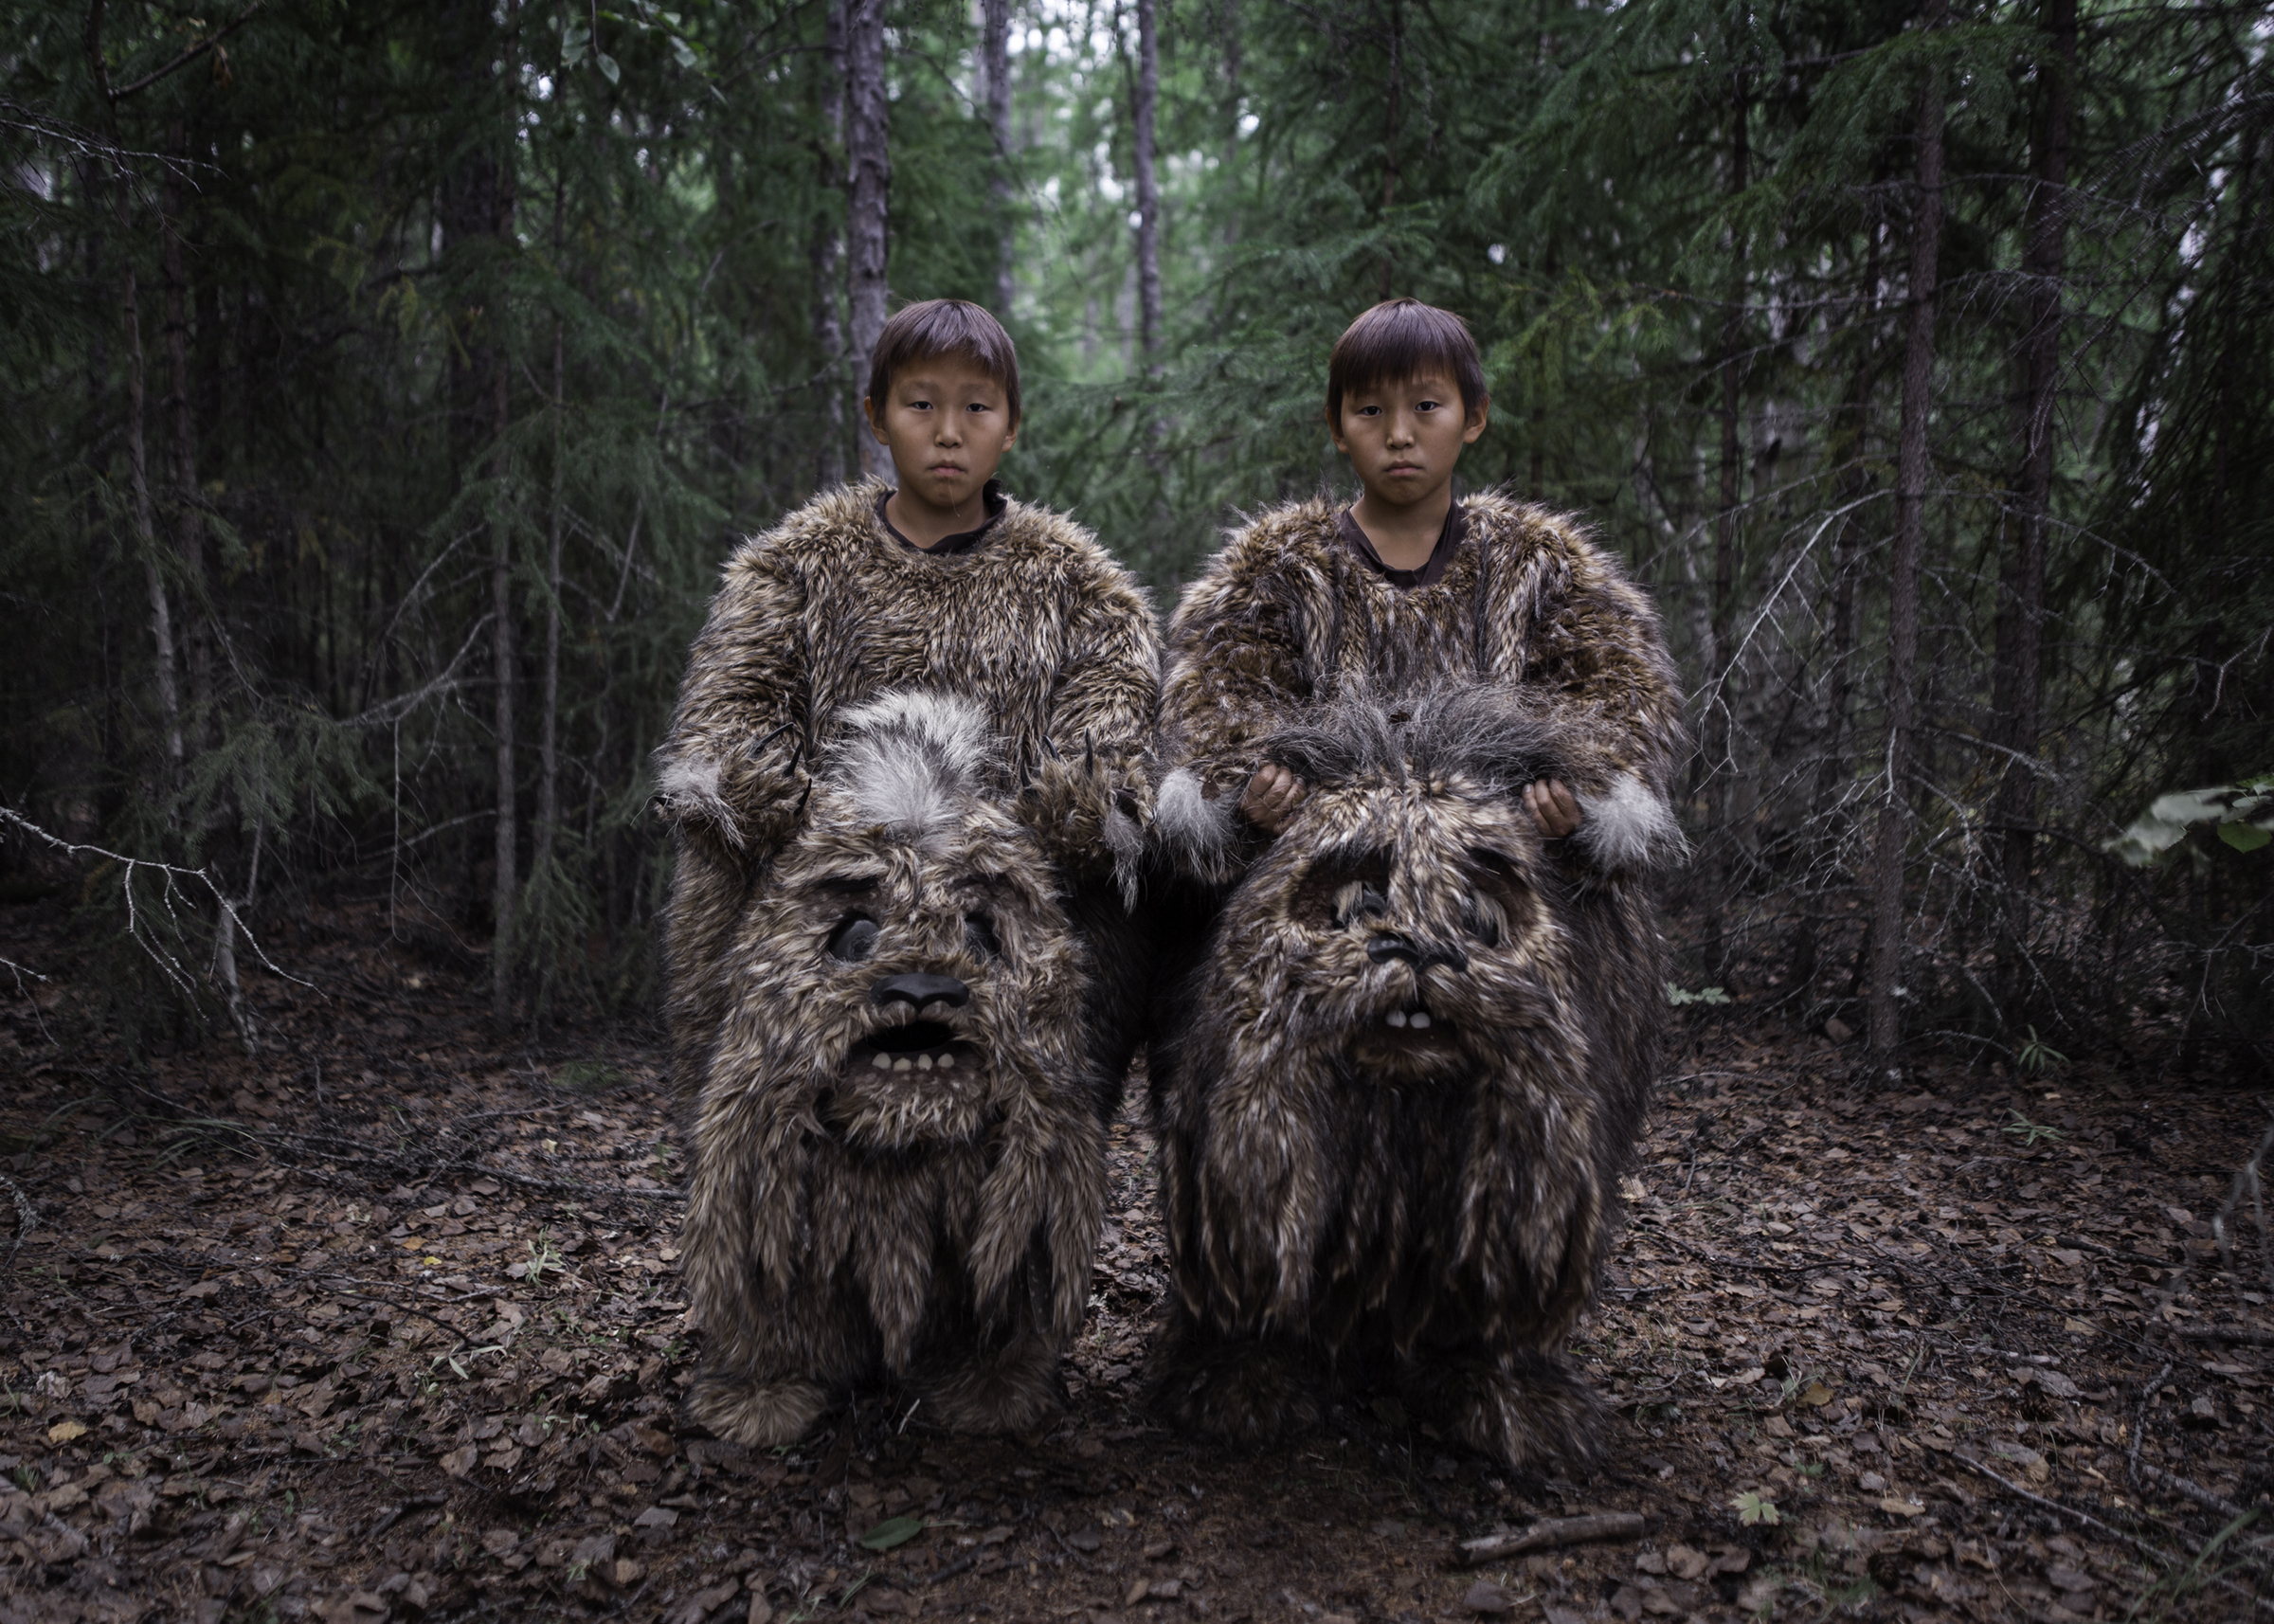 Twins Semyon and Stepan starred in the fairy tale  The Old Beyberikeen  playing the roles of mythical creatures living in the swamps. It was their first film.